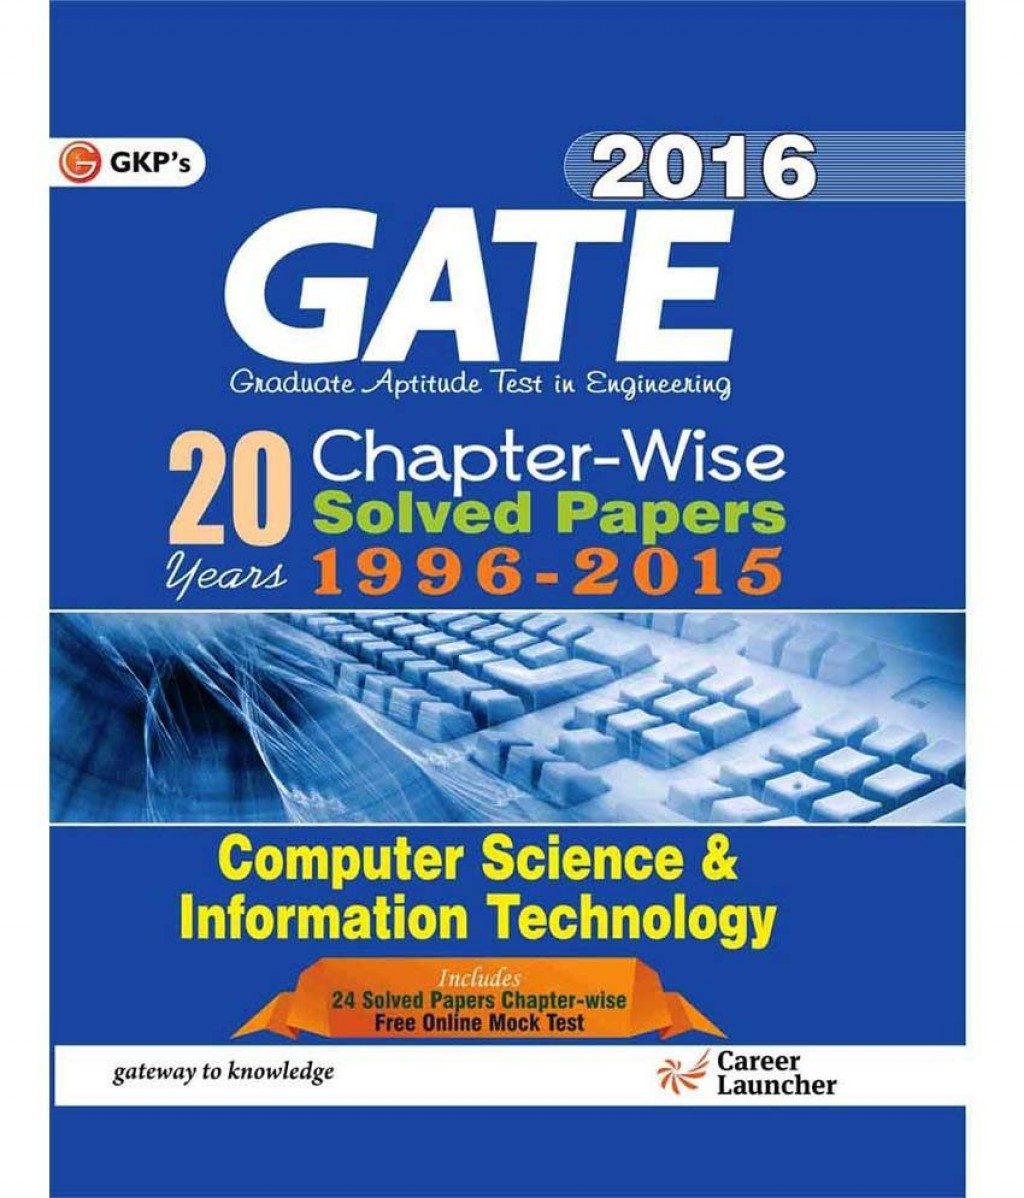 017 Gate Papers Computer Science It Sdl086822326 Essay Example Virginia Tech Outstanding Application 2017 2016 Large